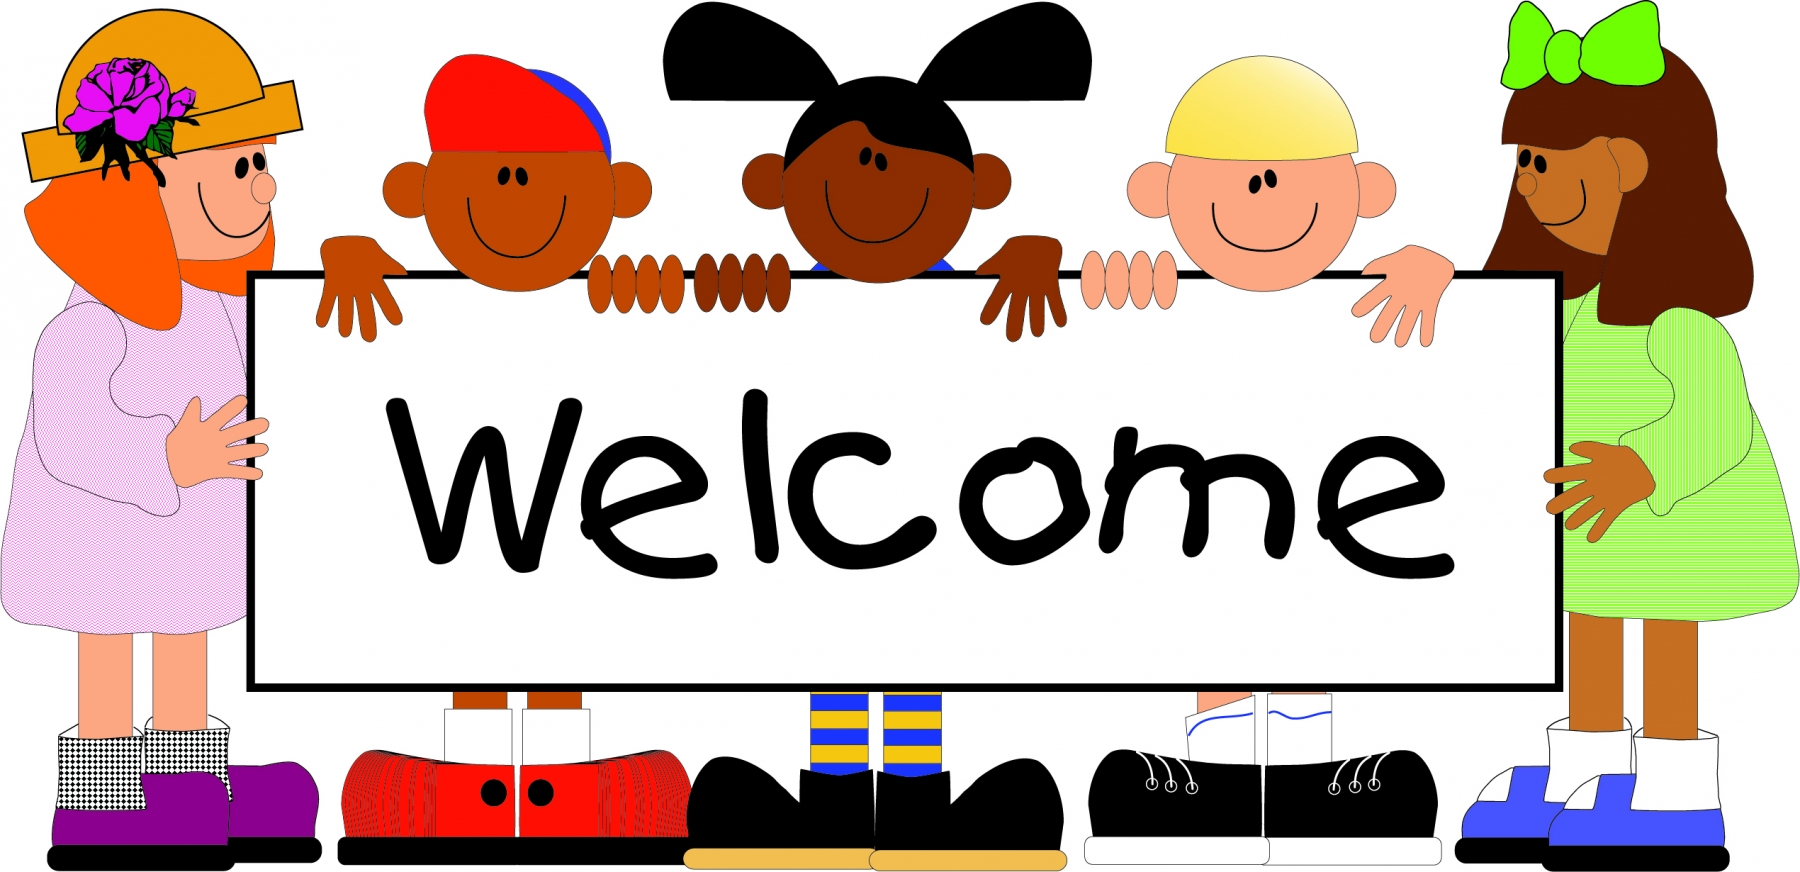 welcome school clipart 5342021 som300 info rh som300 info welcome to our school clipart welcome to our school clipart